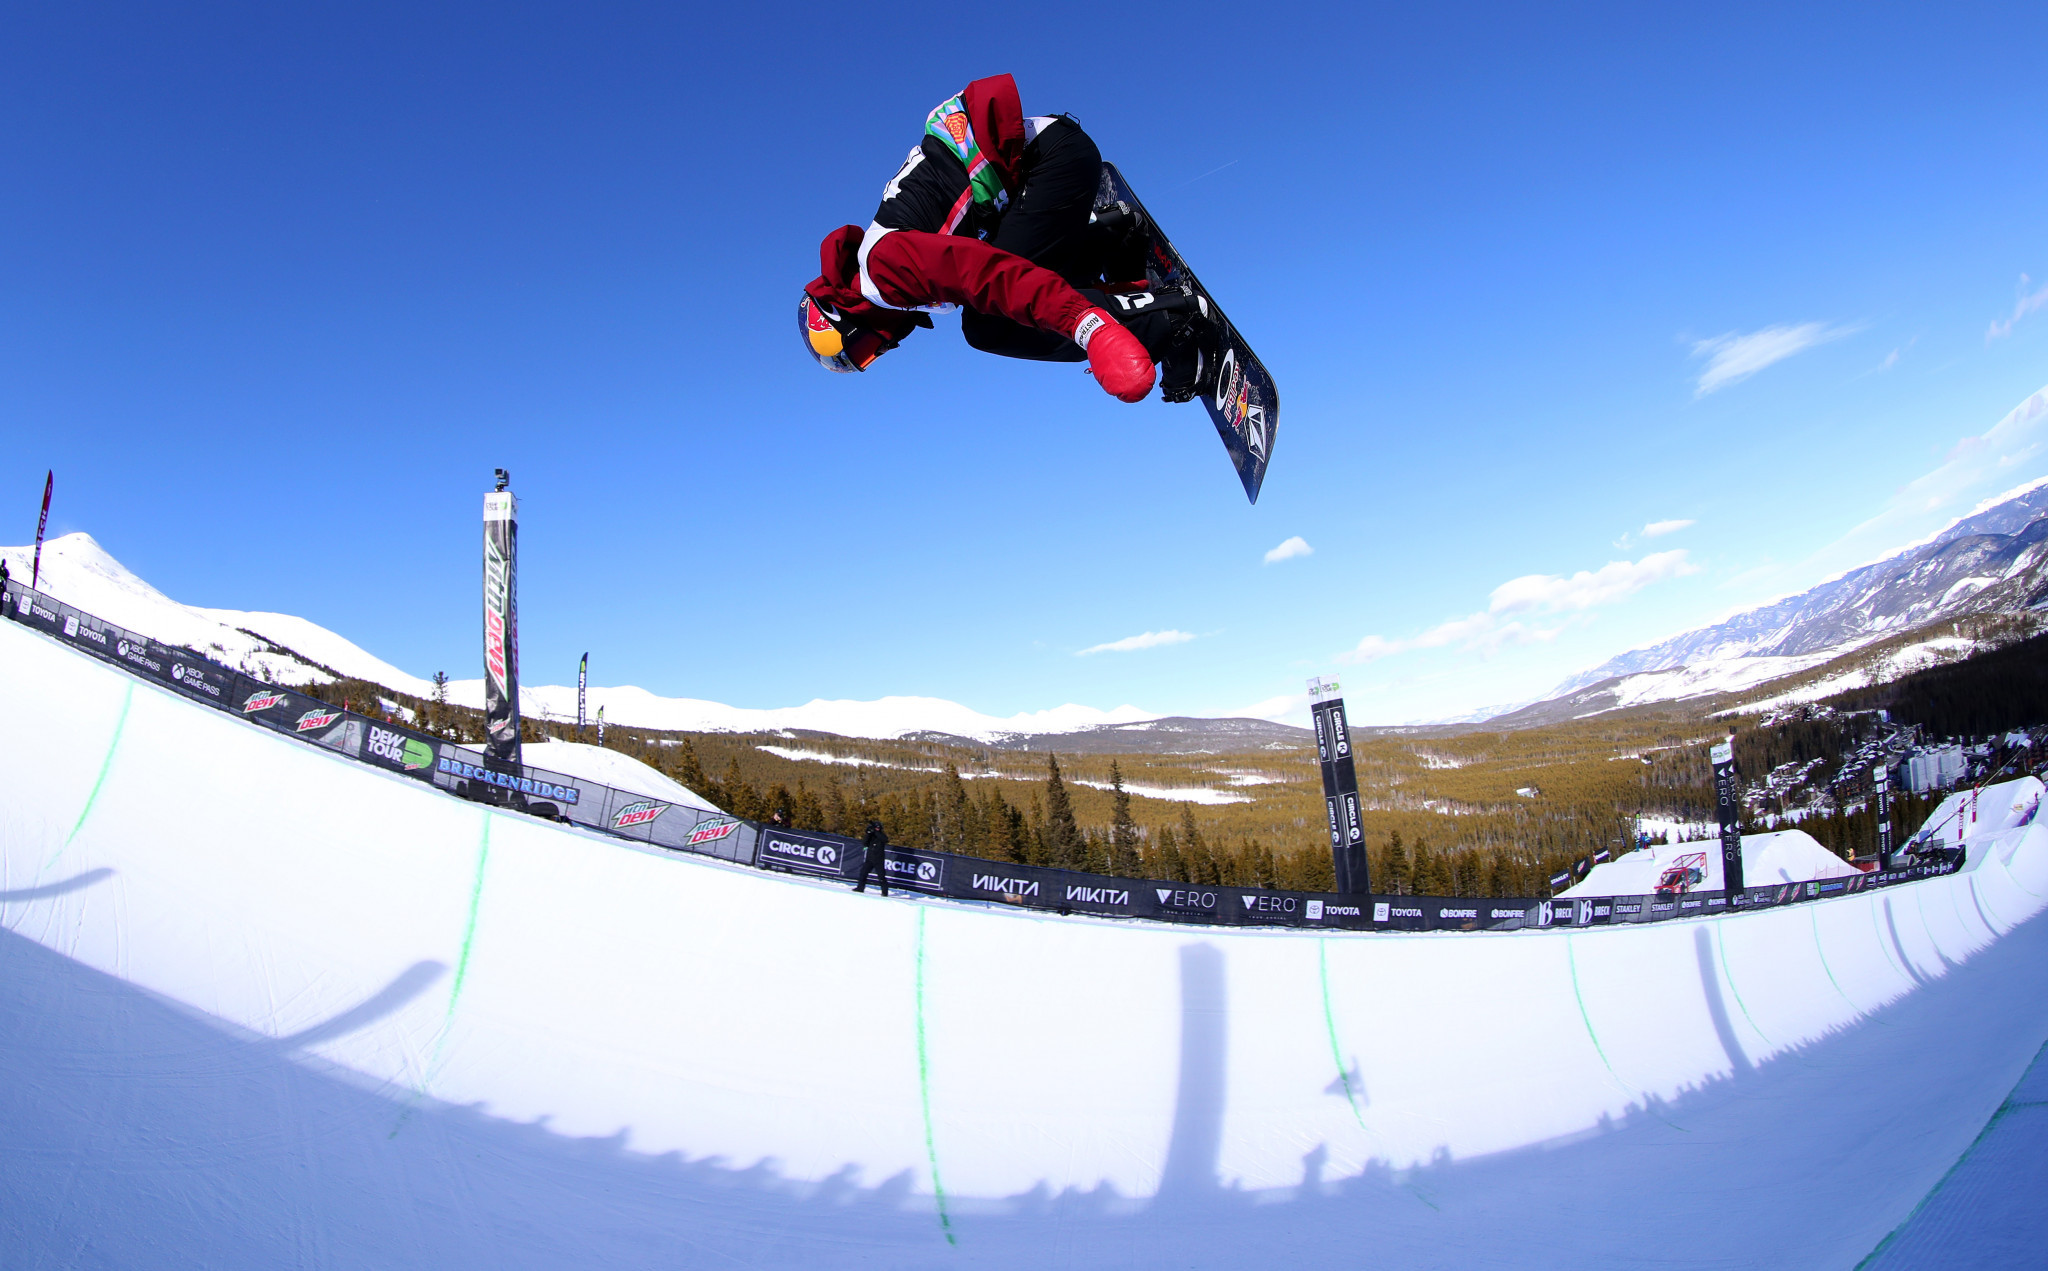 Scotty James of Australia won the men's halfpipe at the FIS Snowboard World Cup in Laax ©Getty Images